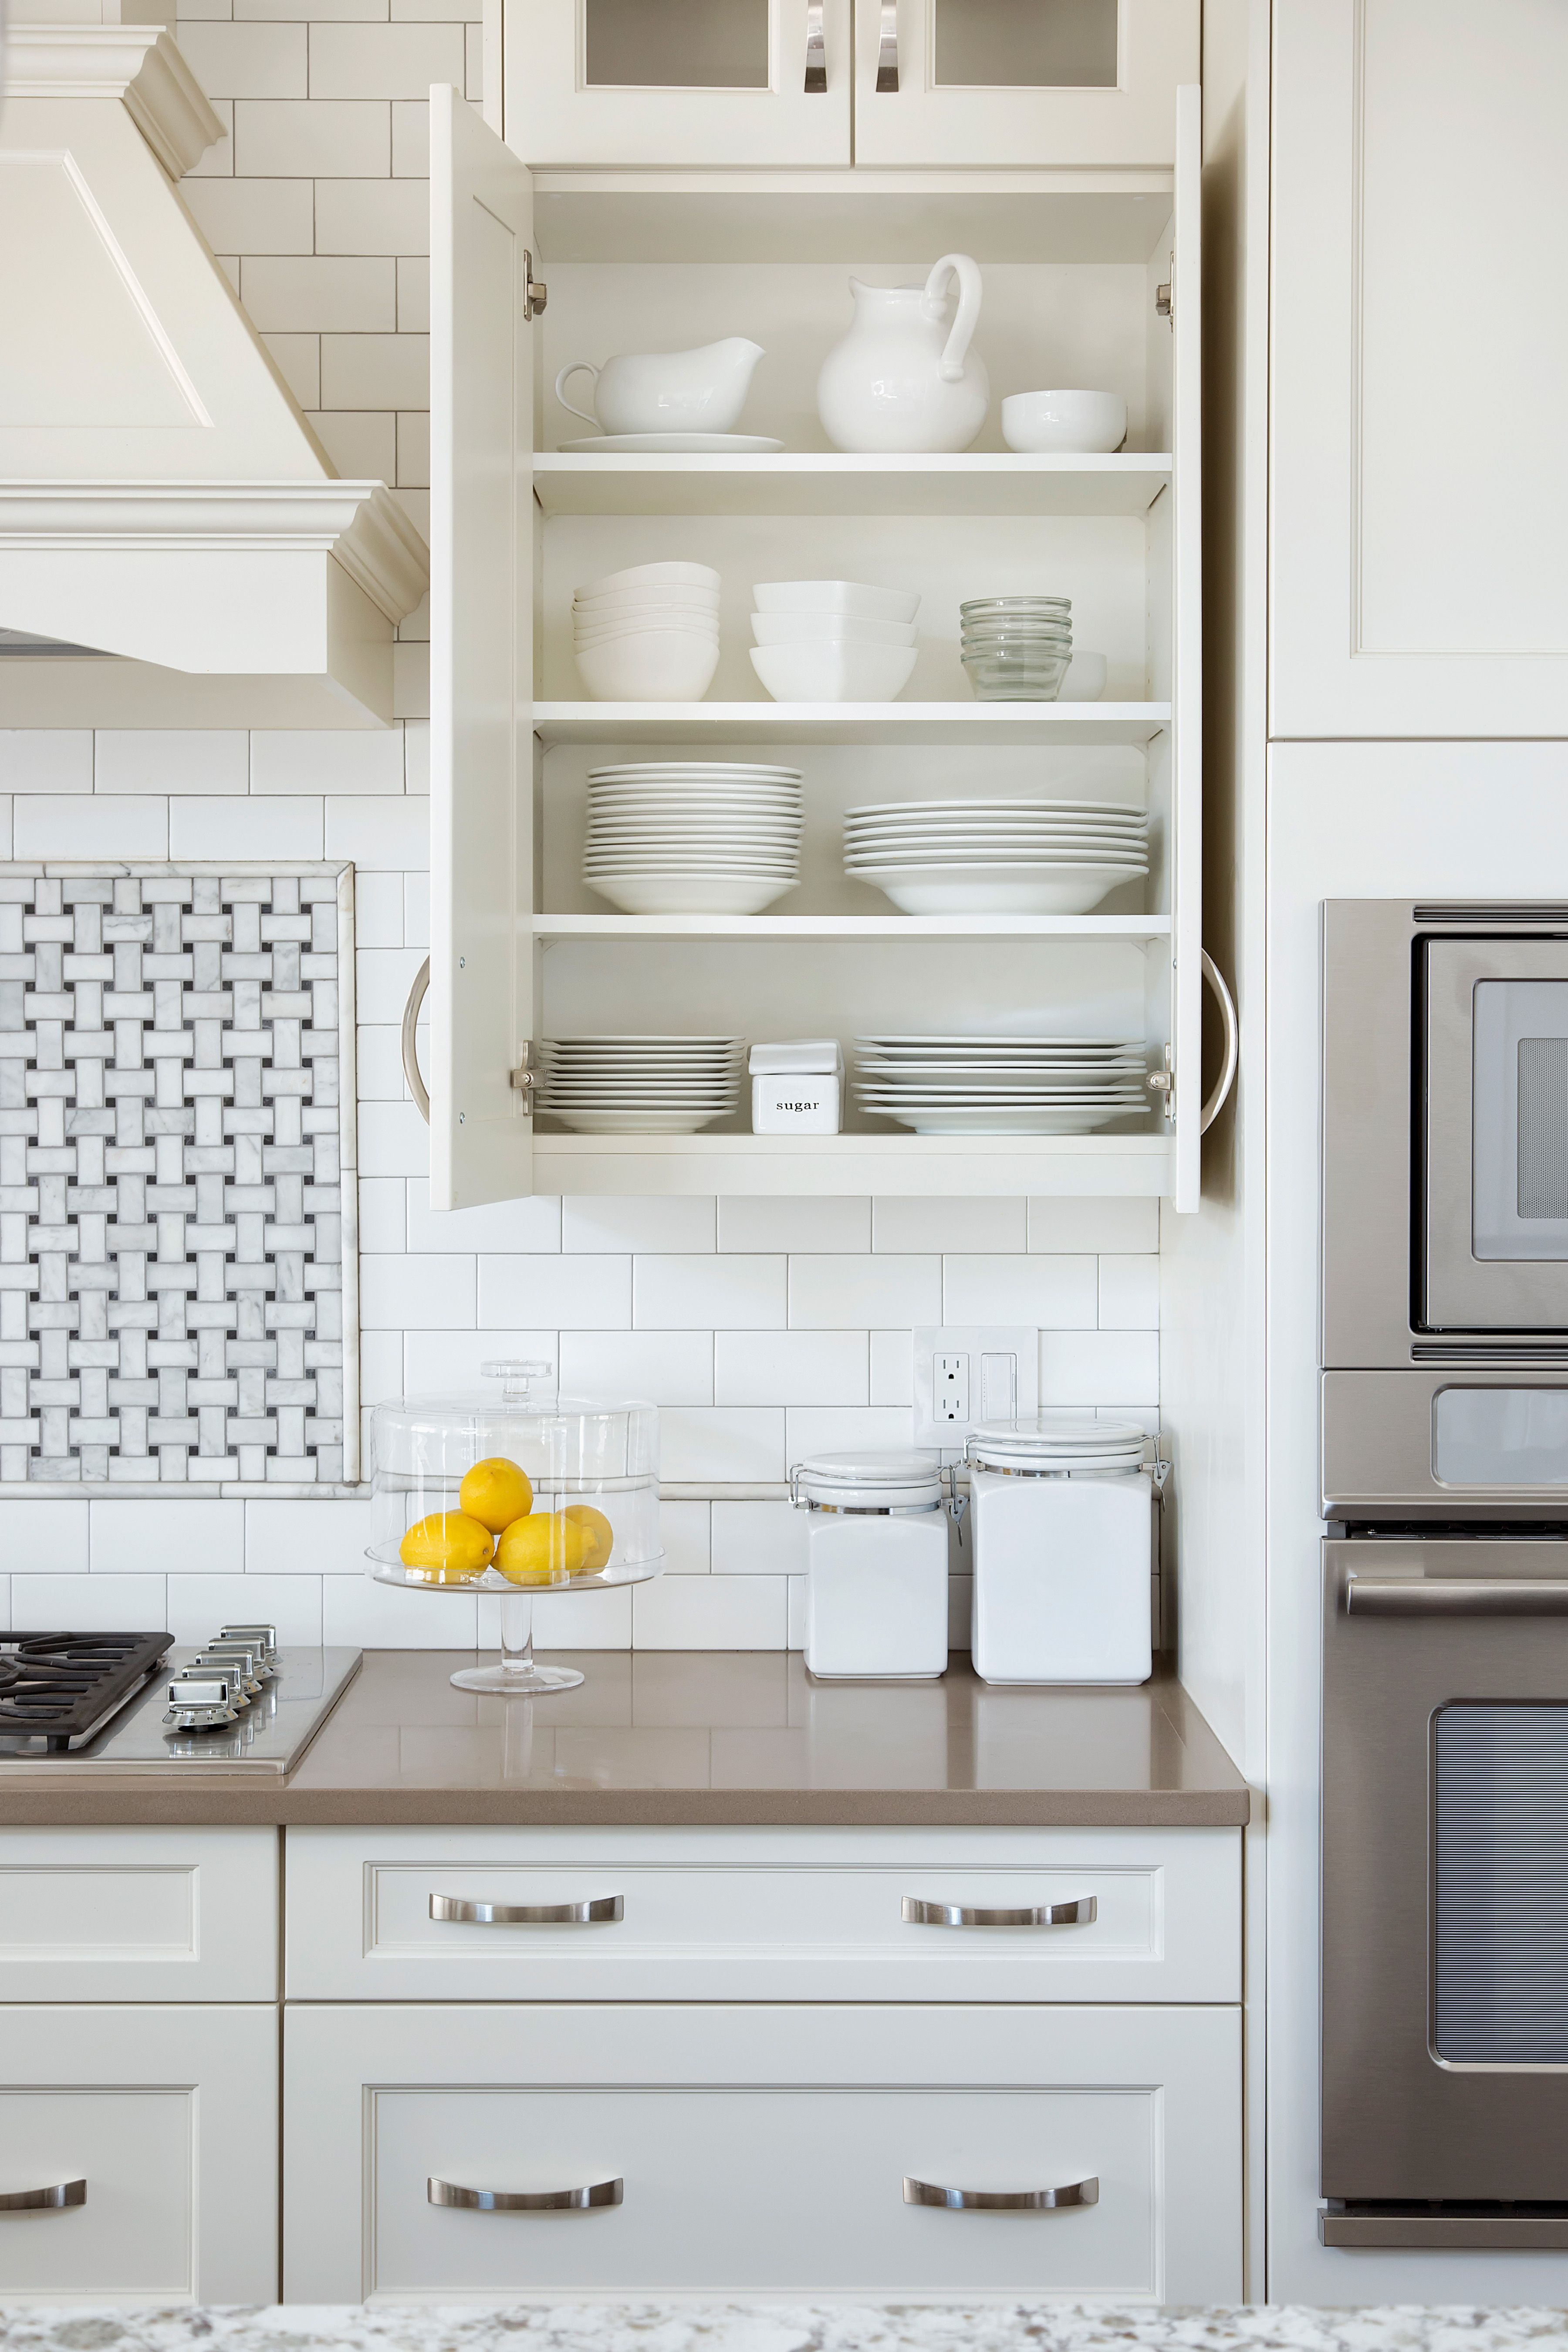 Tips On Organizing Your Home Clean Kitchen Cabinets Kitchen Cabinets Kitchen Counter Organization